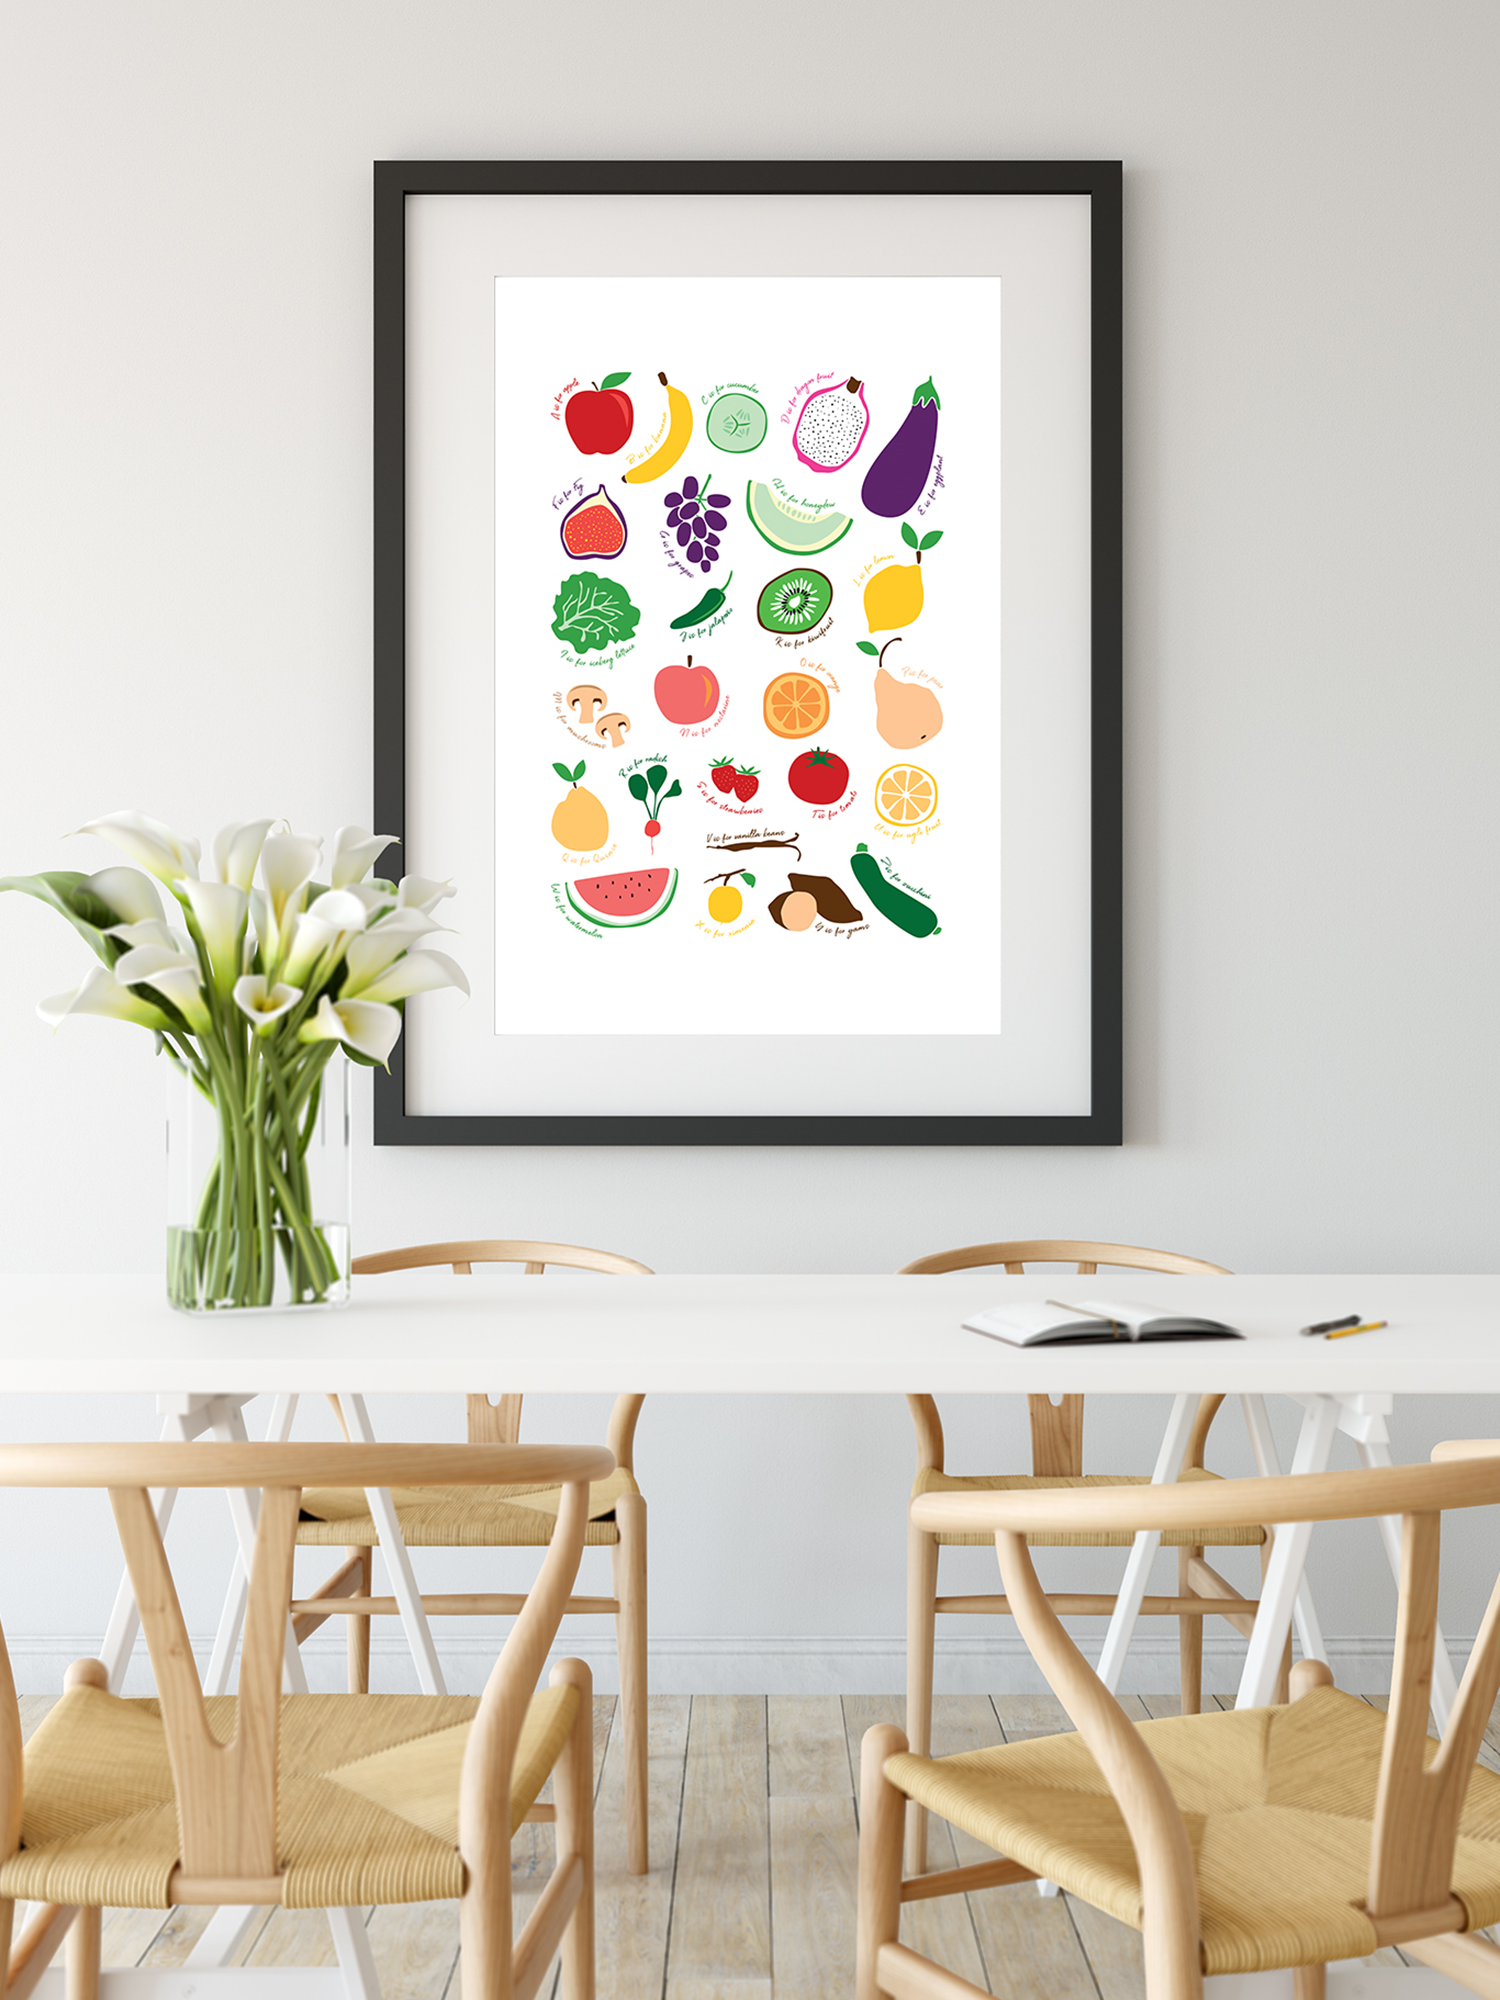 a2-abc-fruit-and-vege-mockup-large.png